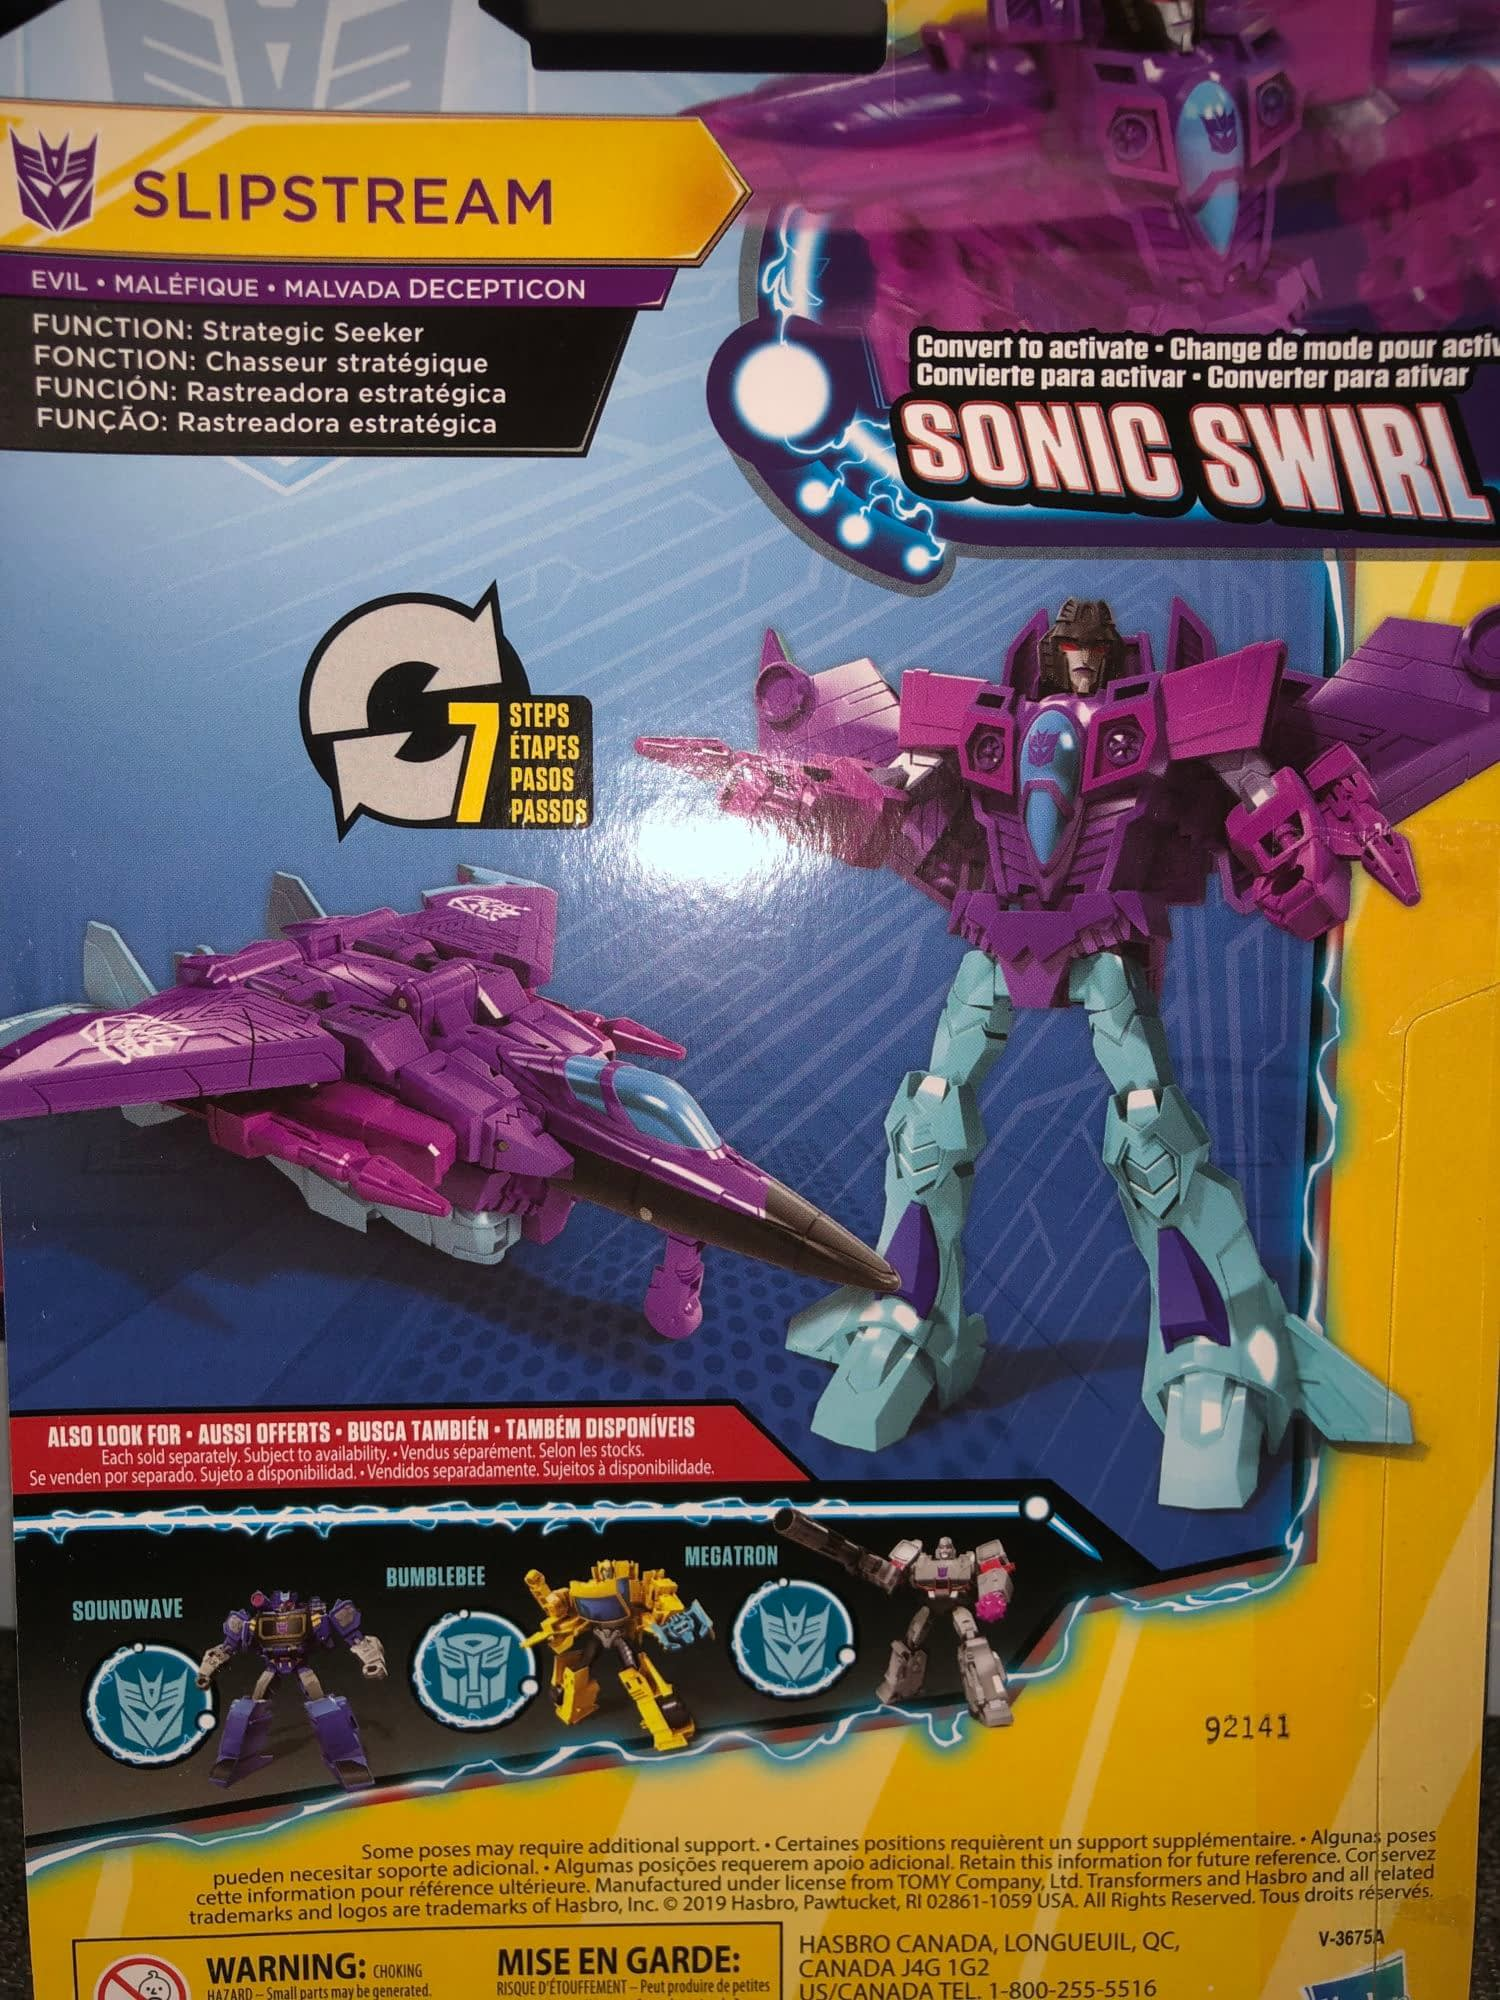 Transfromers 35th Anniversary Is Here Thanks to Hasbro